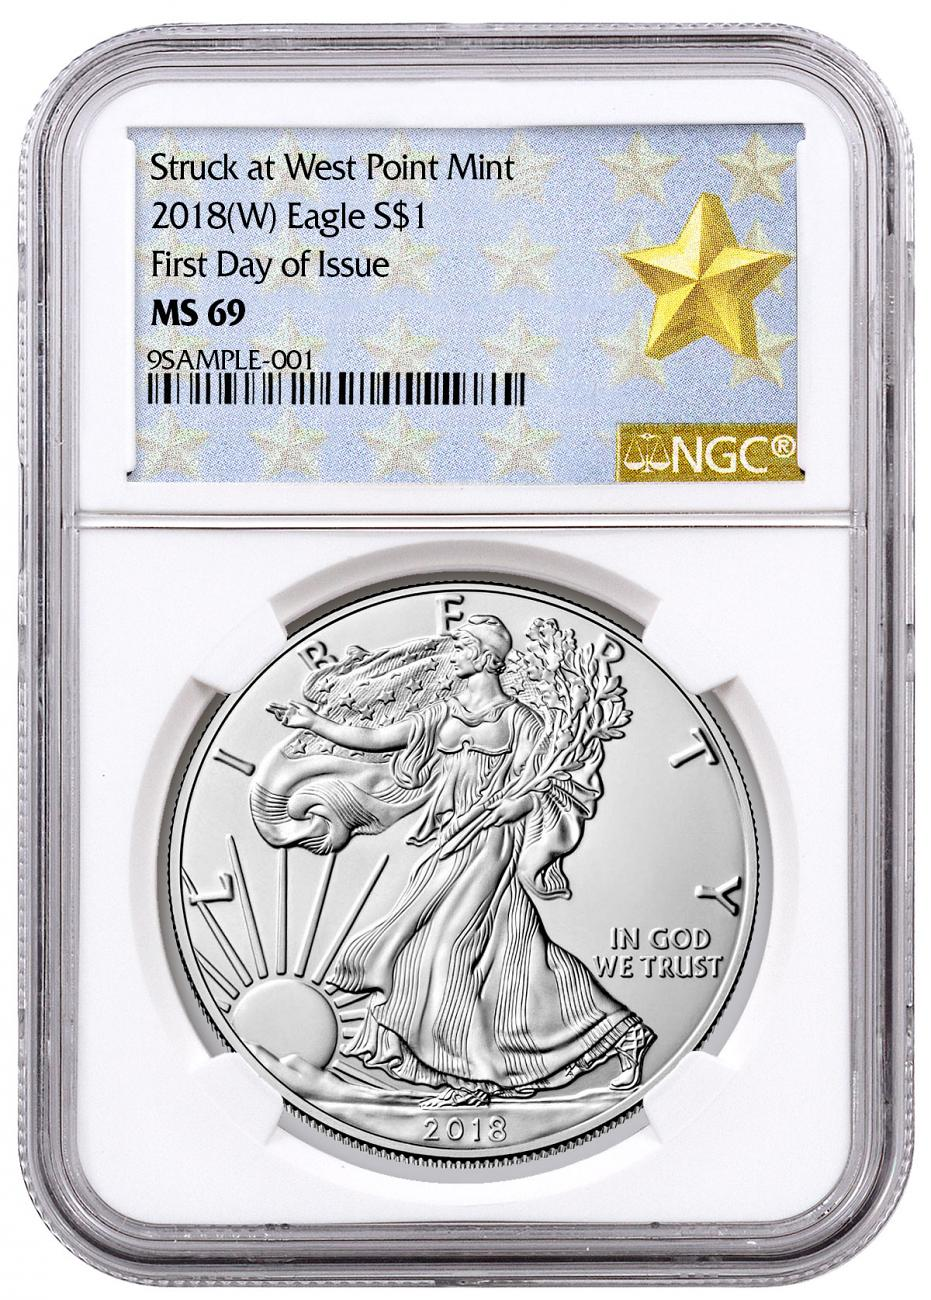 2018-(W) American Silver Eagle Struck at West Point NGC MS69 FDI West Point Gold Star Label